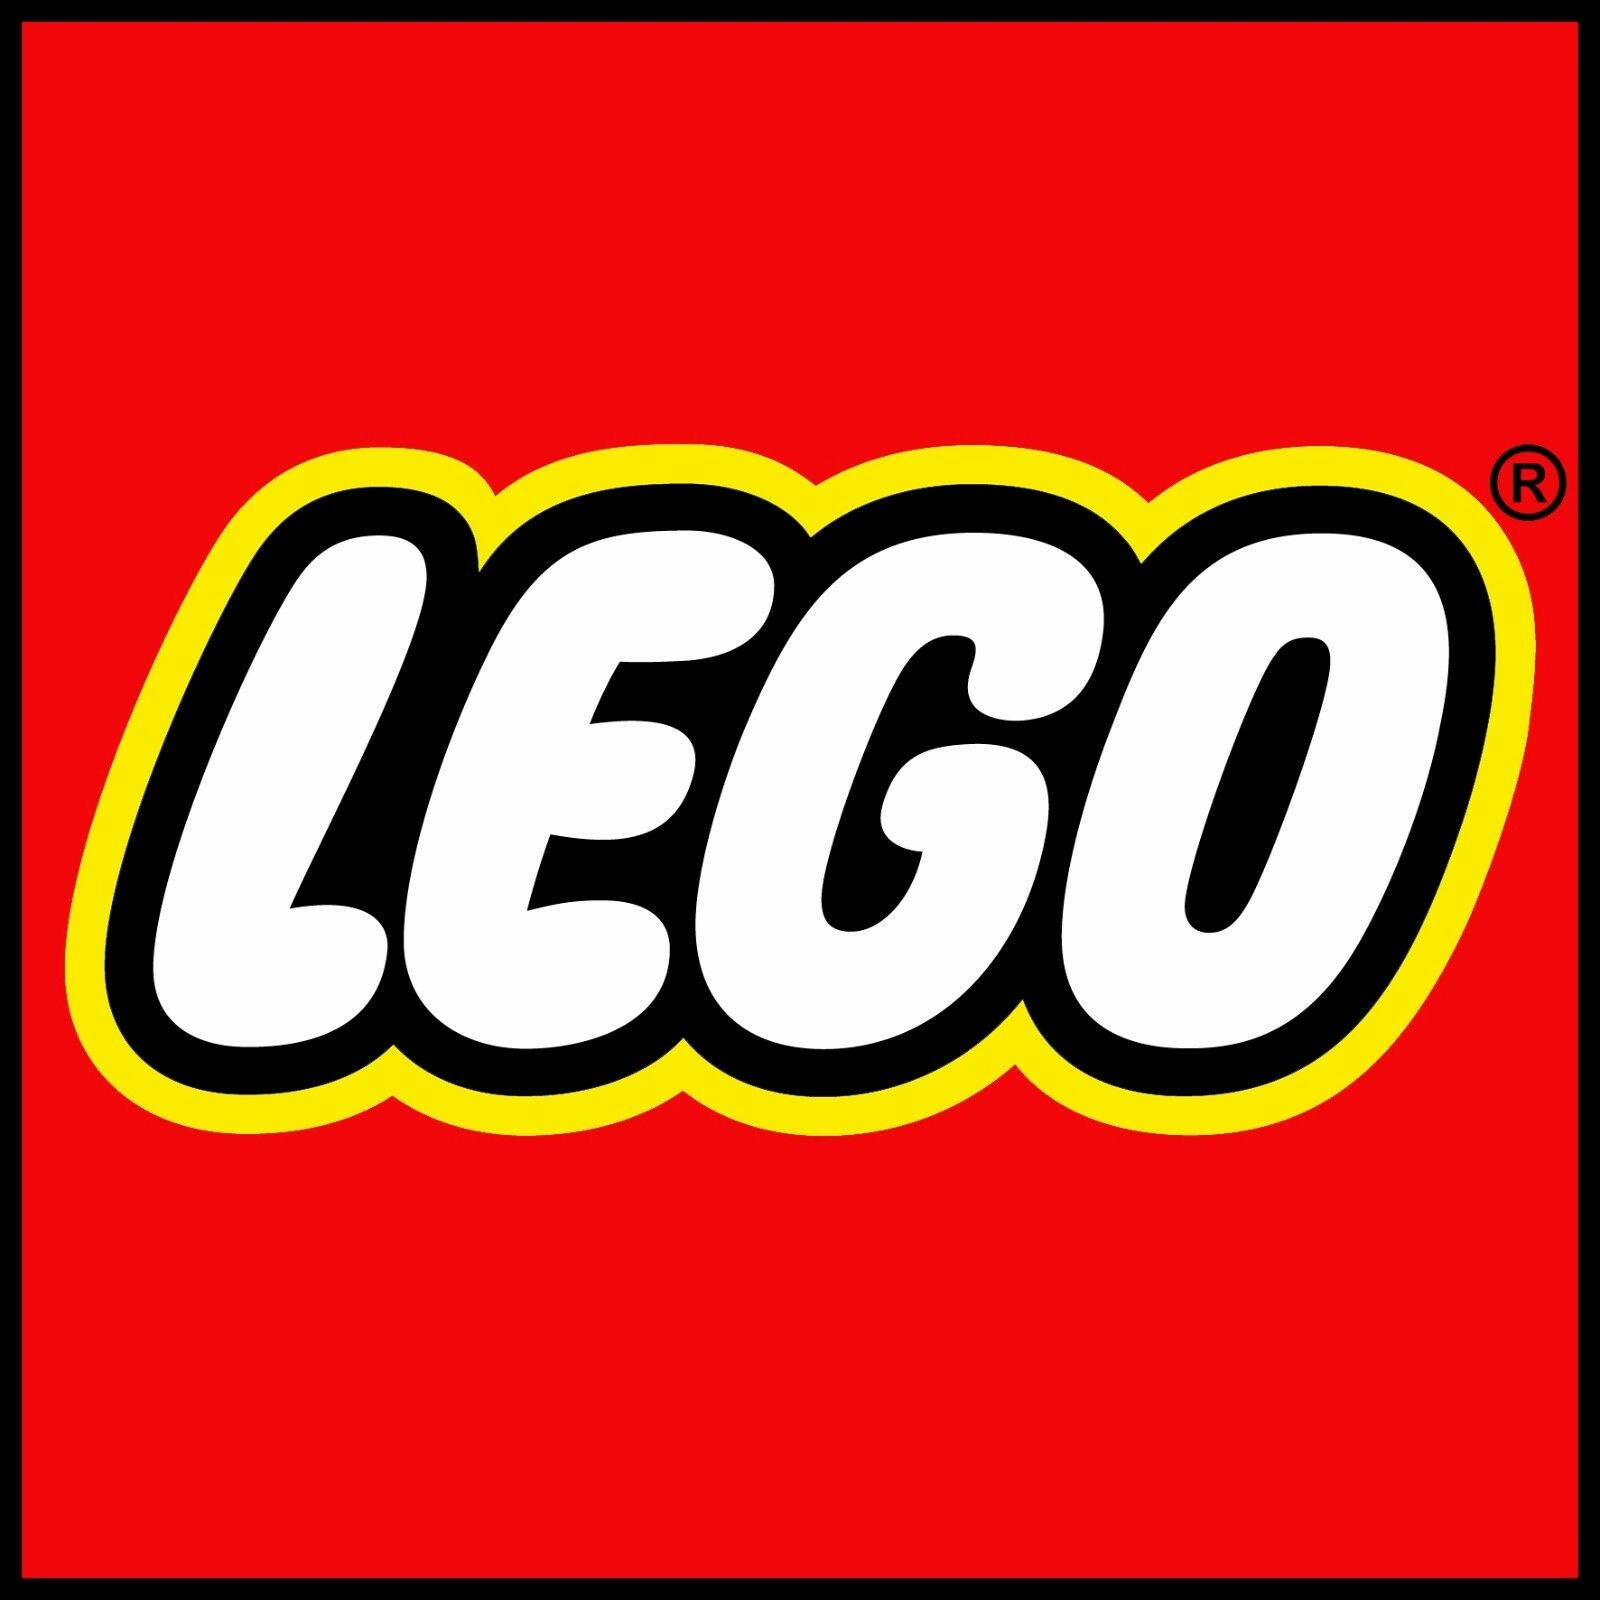 Lego Lot 2050   COMING SOON   TBU